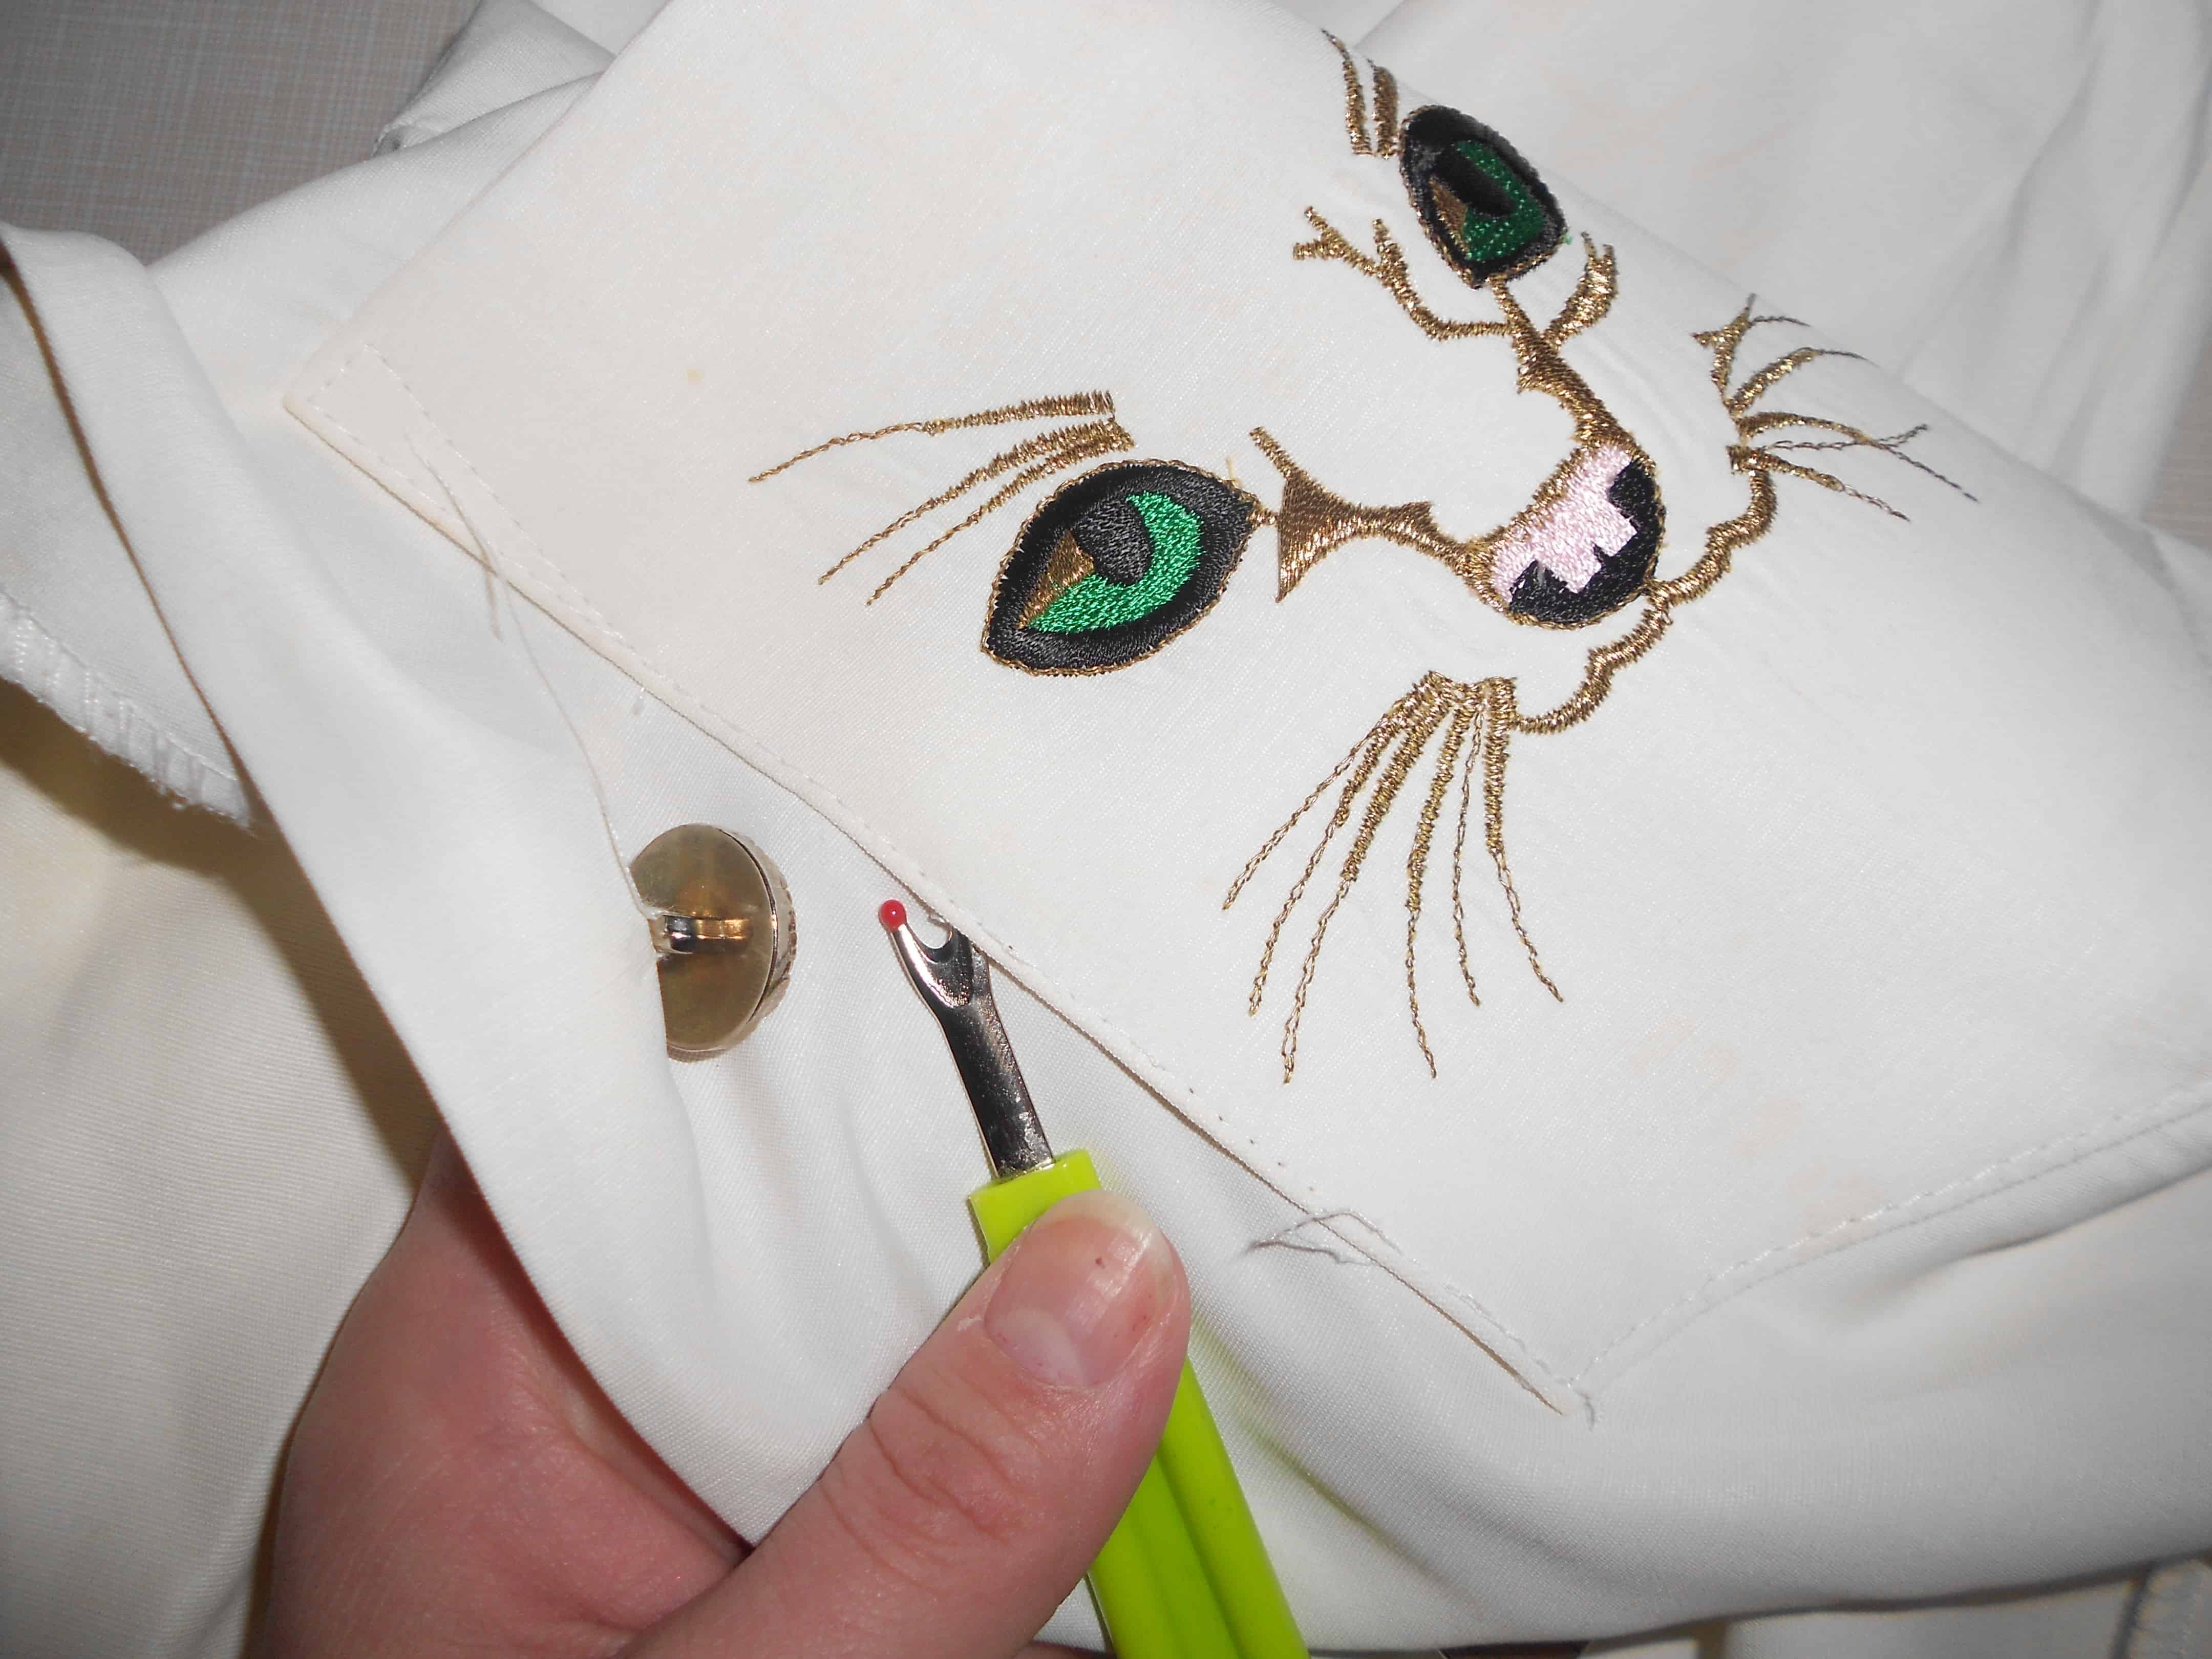 using seam ripper to remove cat pocket from shirt